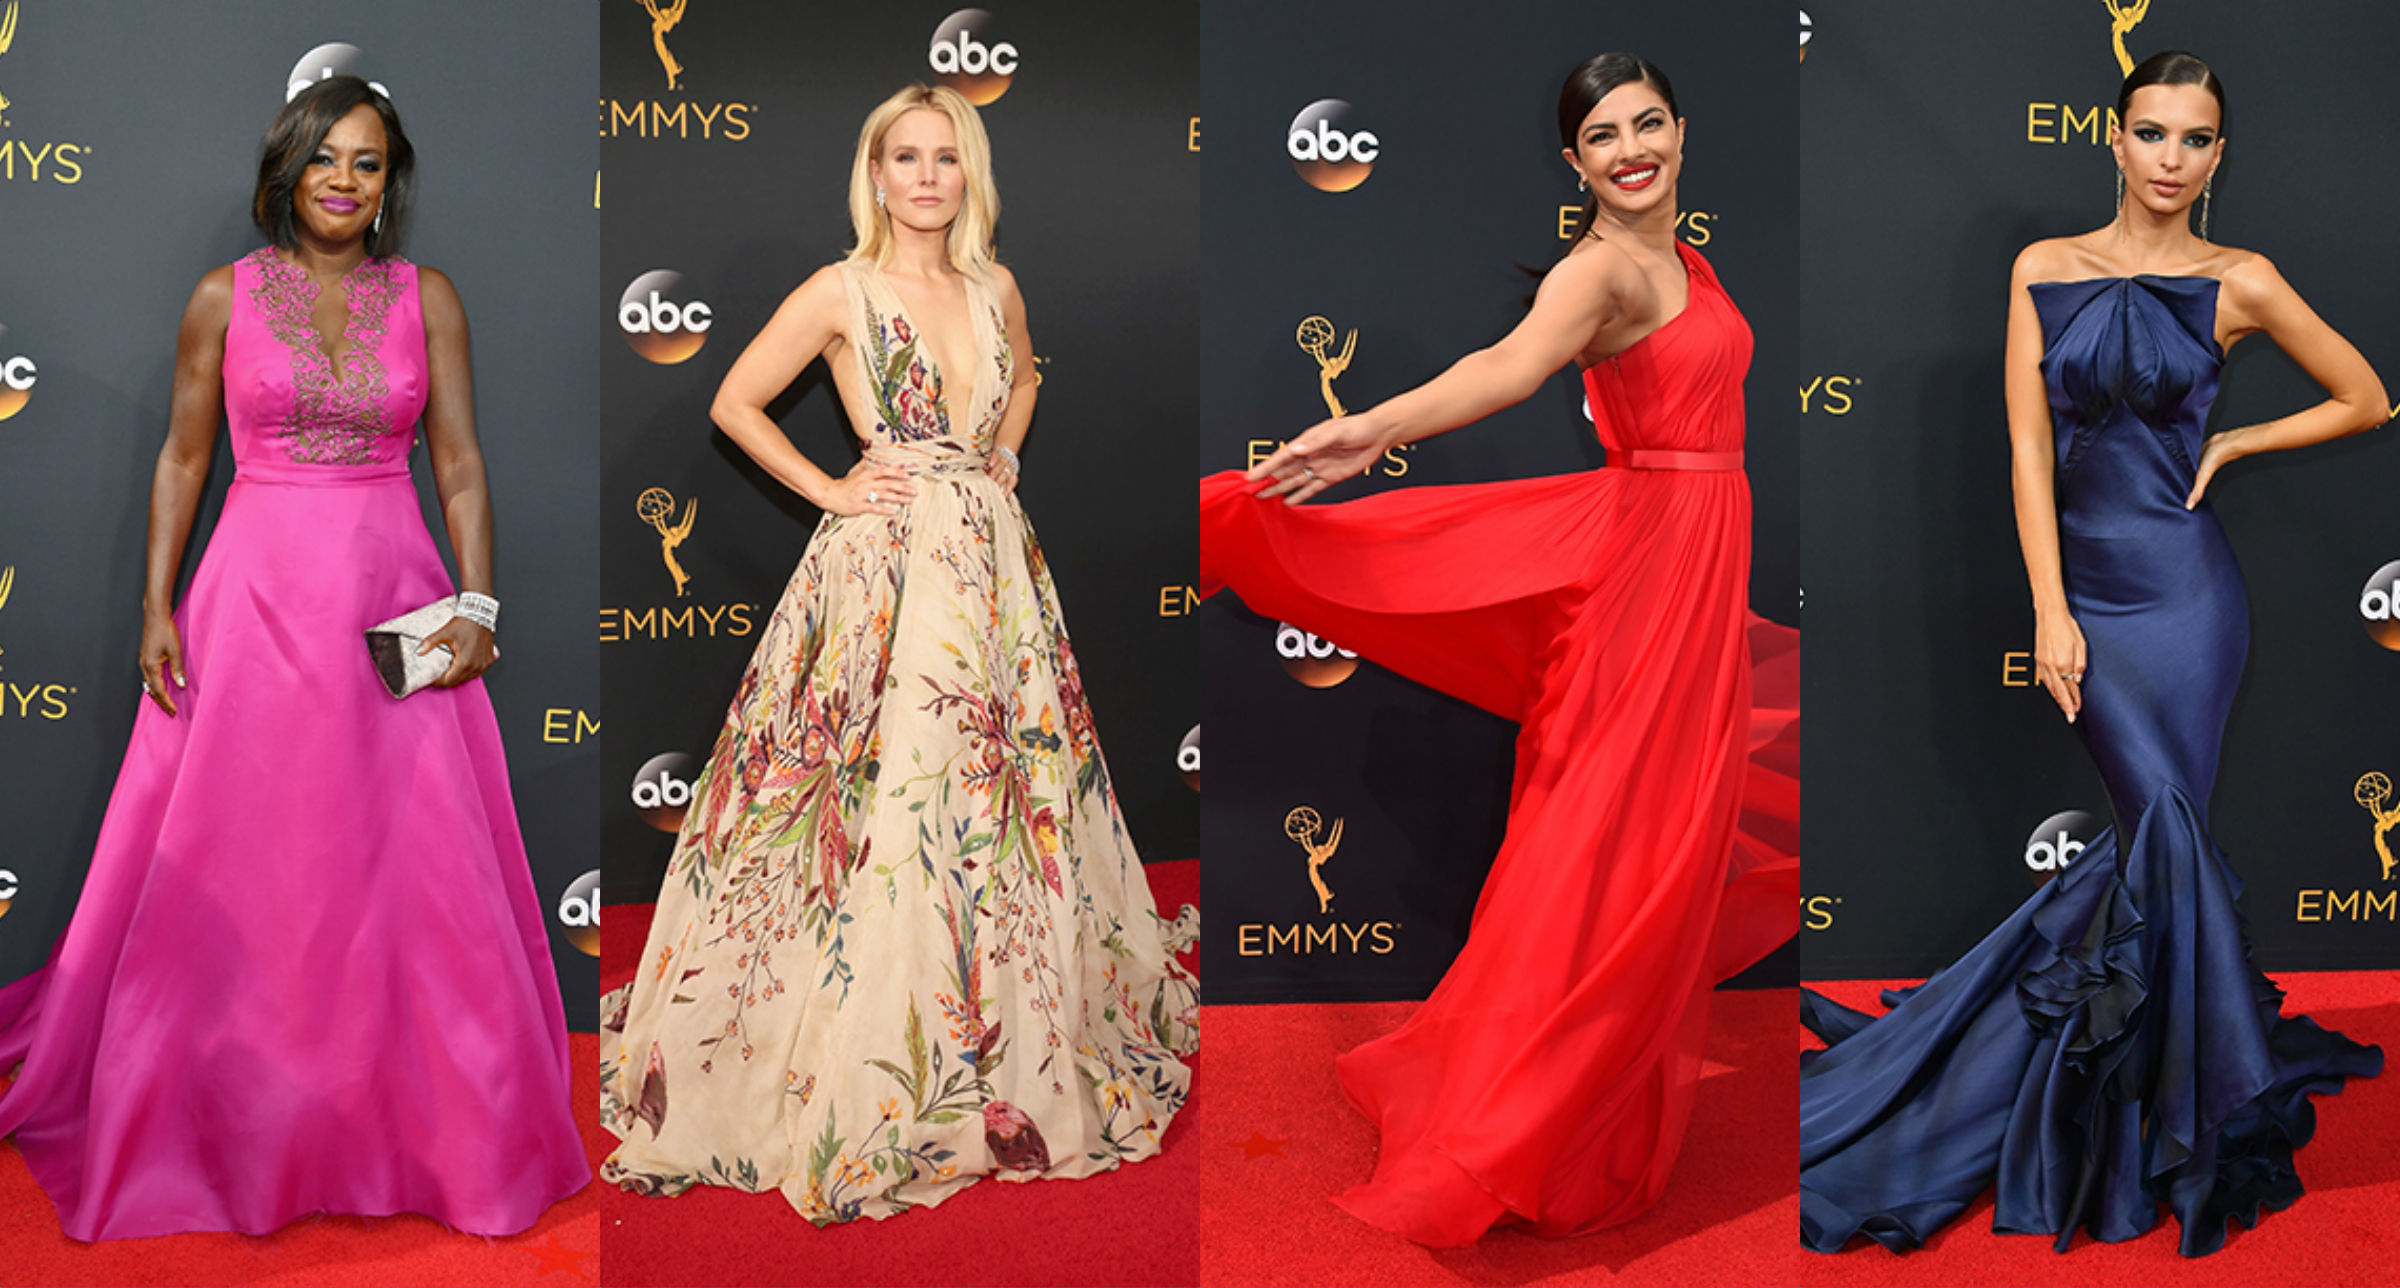 EMMY 2016 Red Carpet Favourites – My Top 8